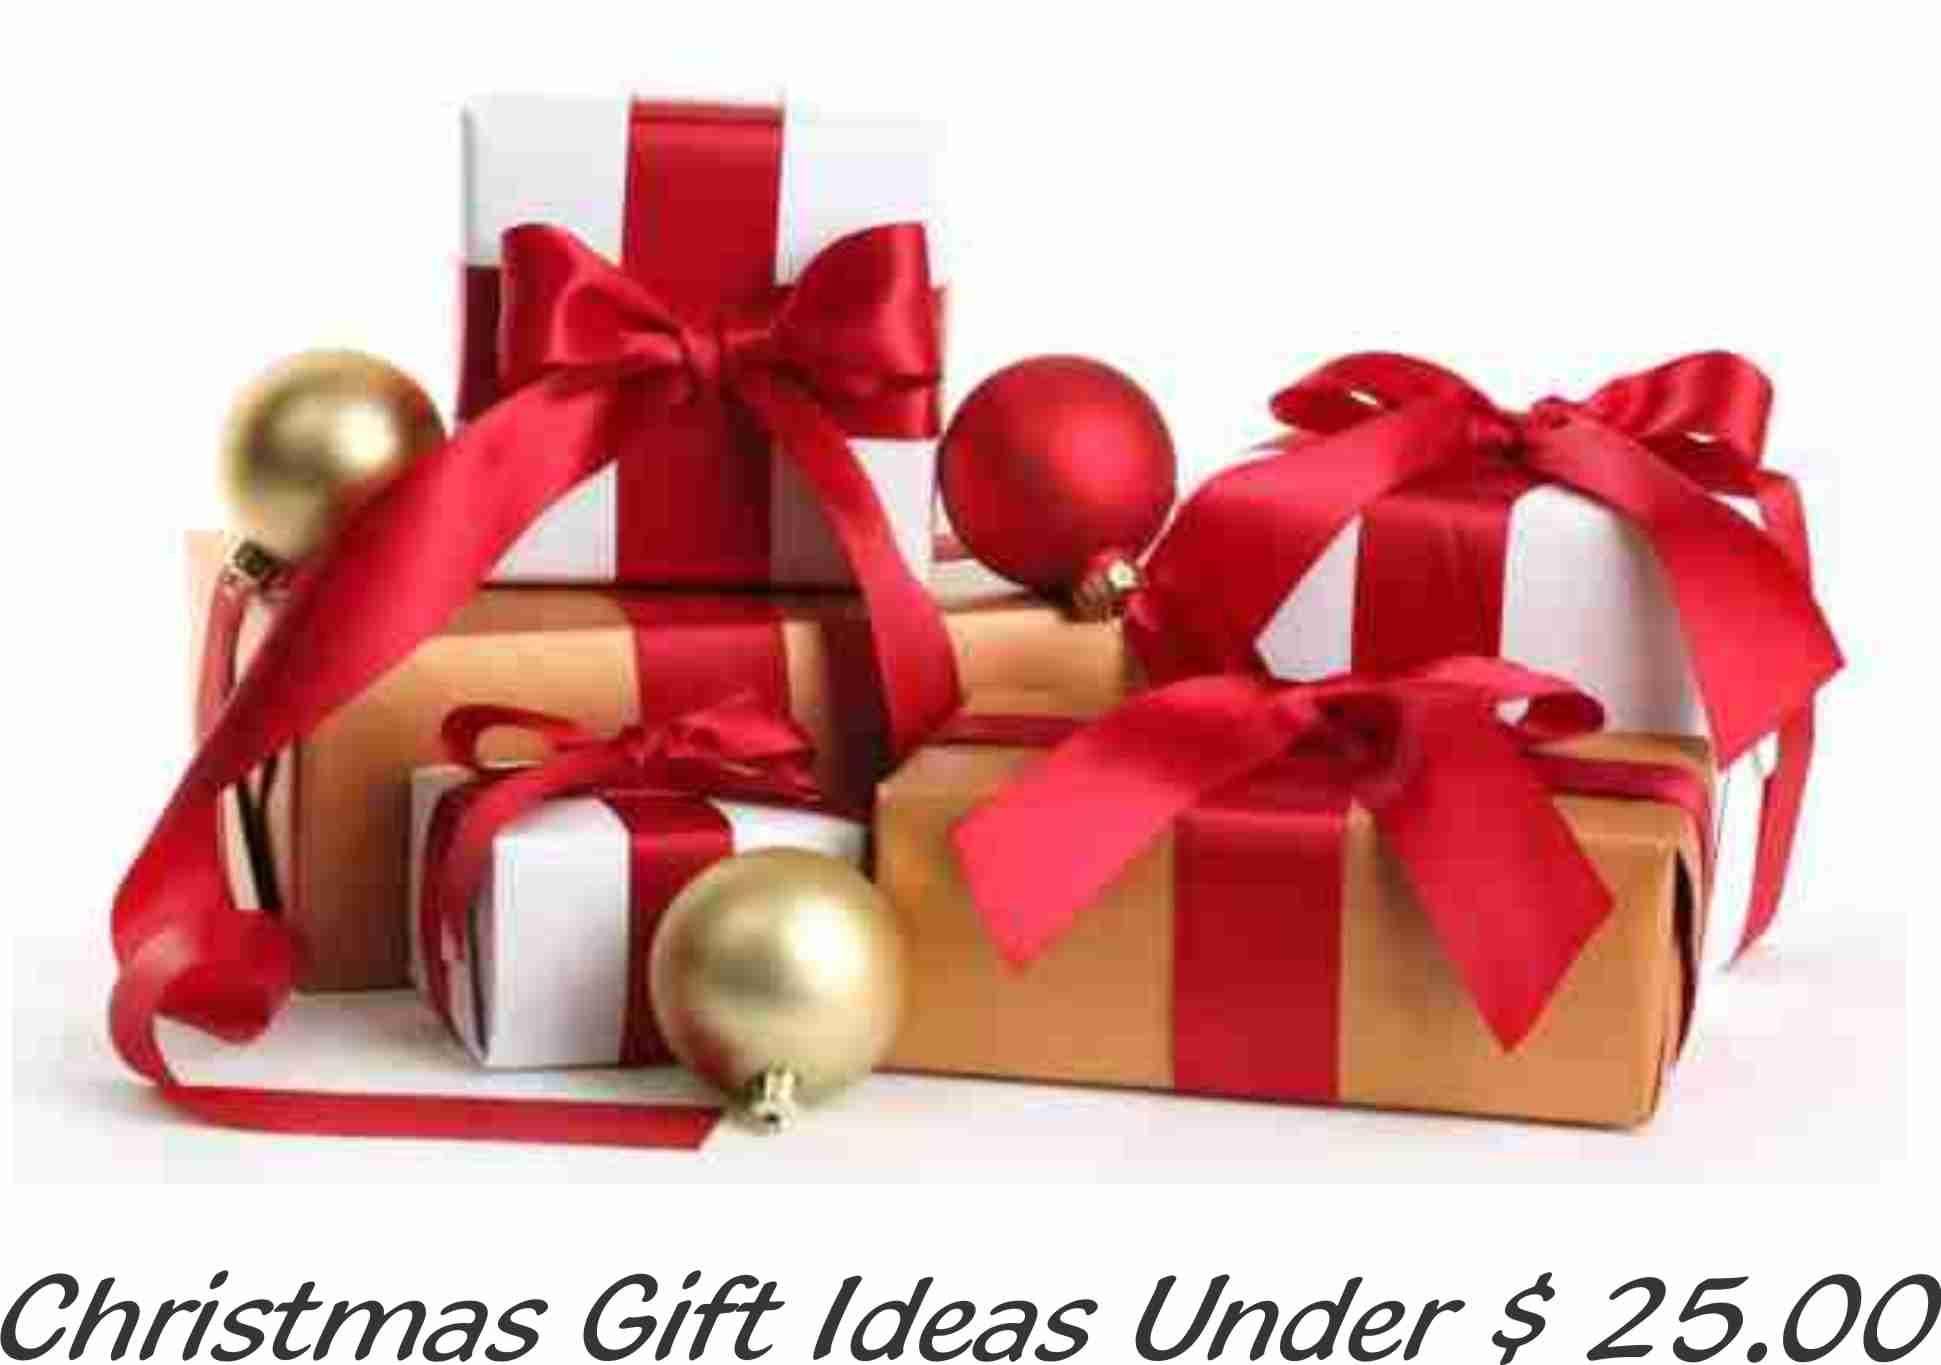 Gifts $10.00 to $ 25.00